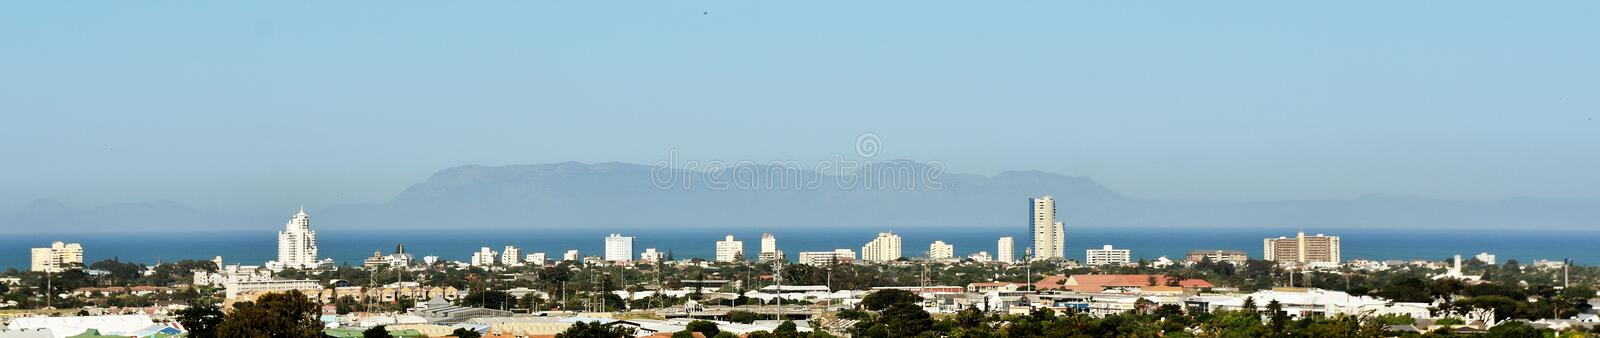 City of Strand in South Africa. Panorama with the City of Strand in South Africa royalty free stock photo